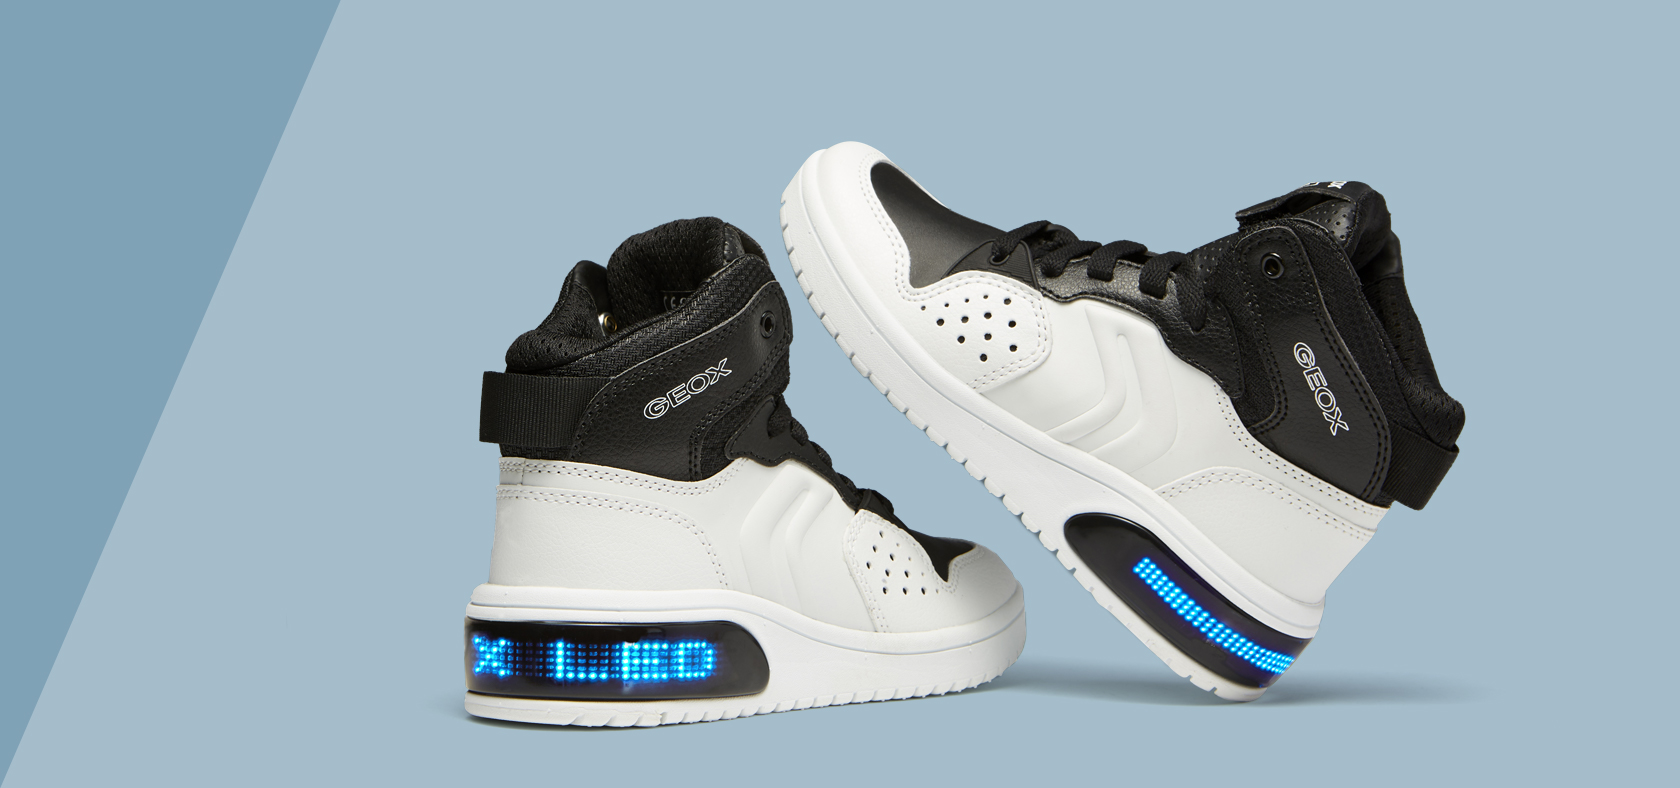 geox light shoes Basar.tbcct.co